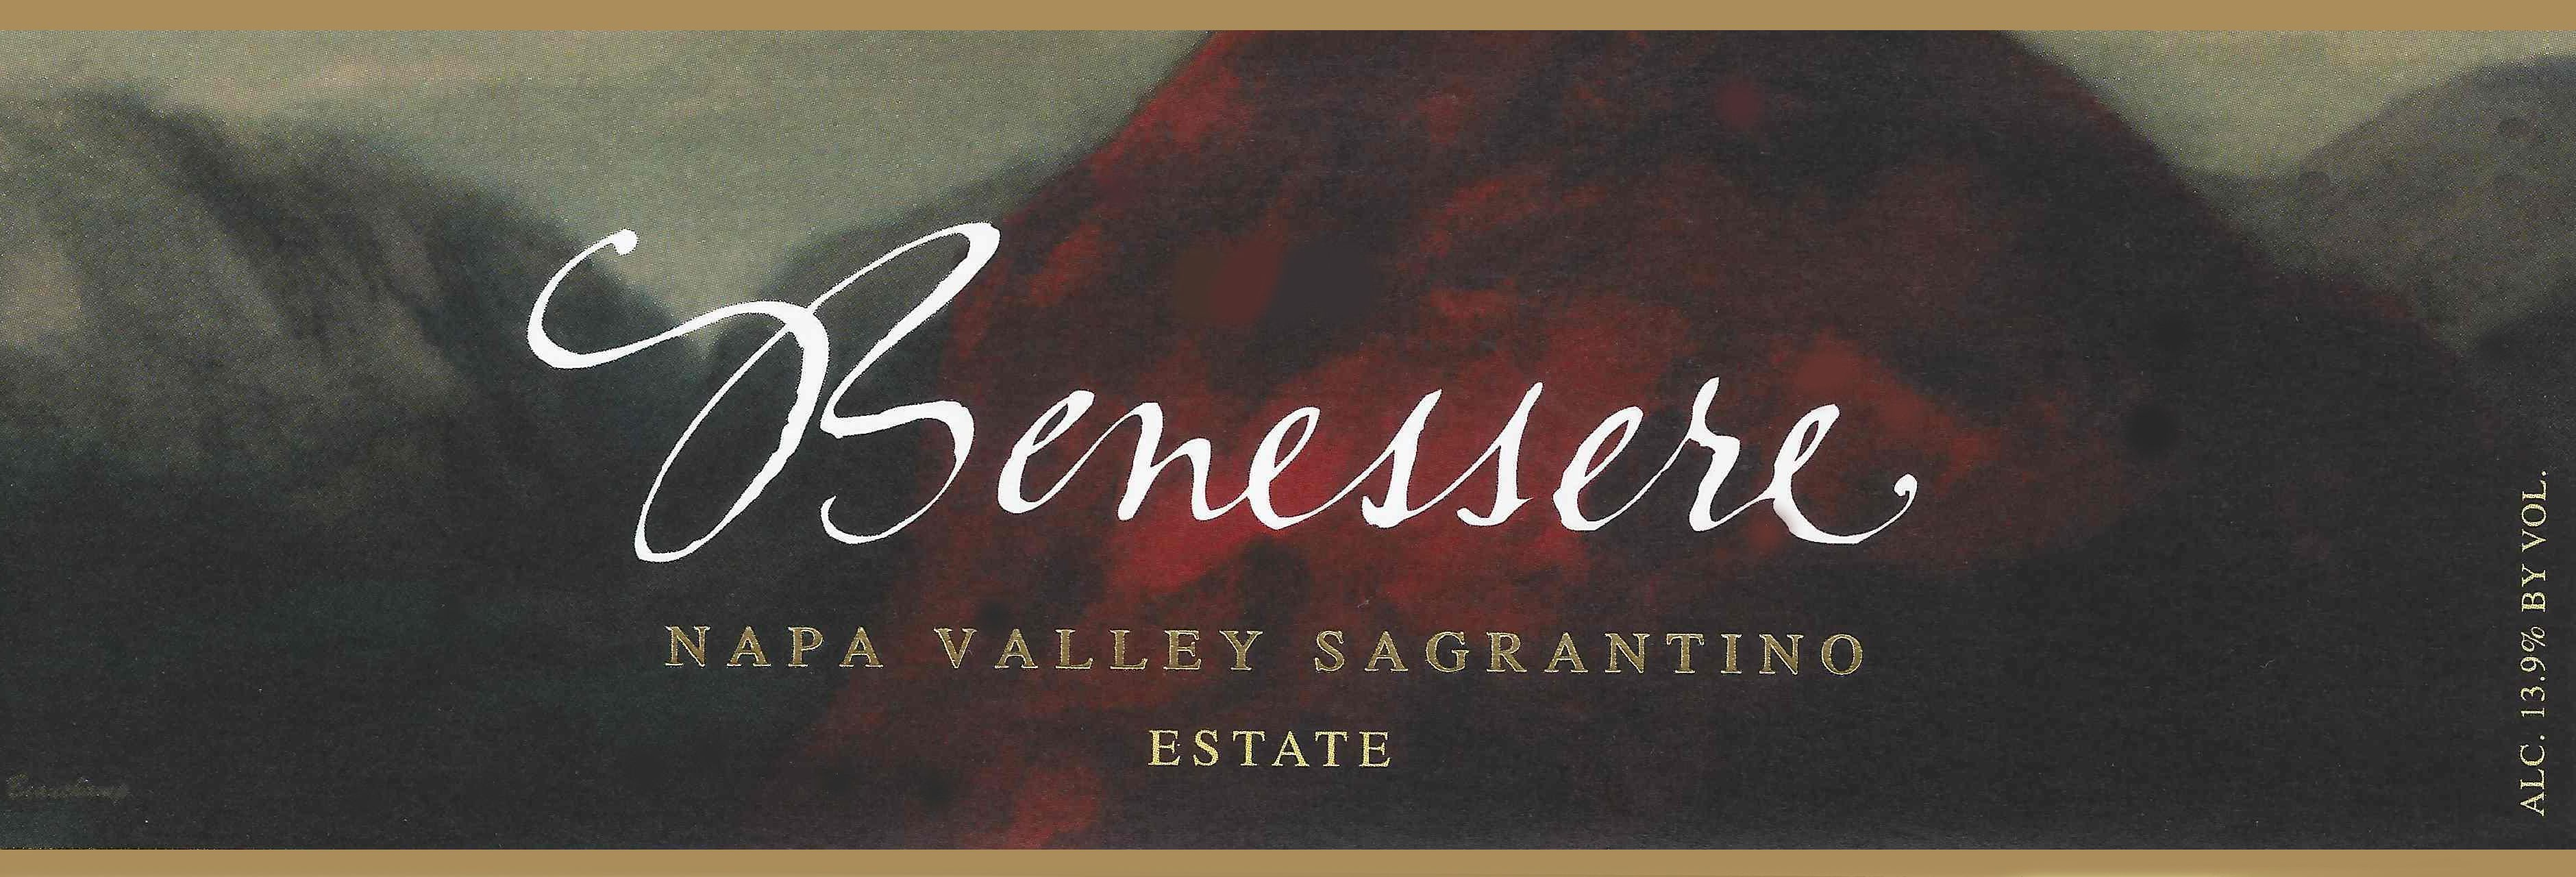 Benessere Estate Sagrantino 2011 Front Label